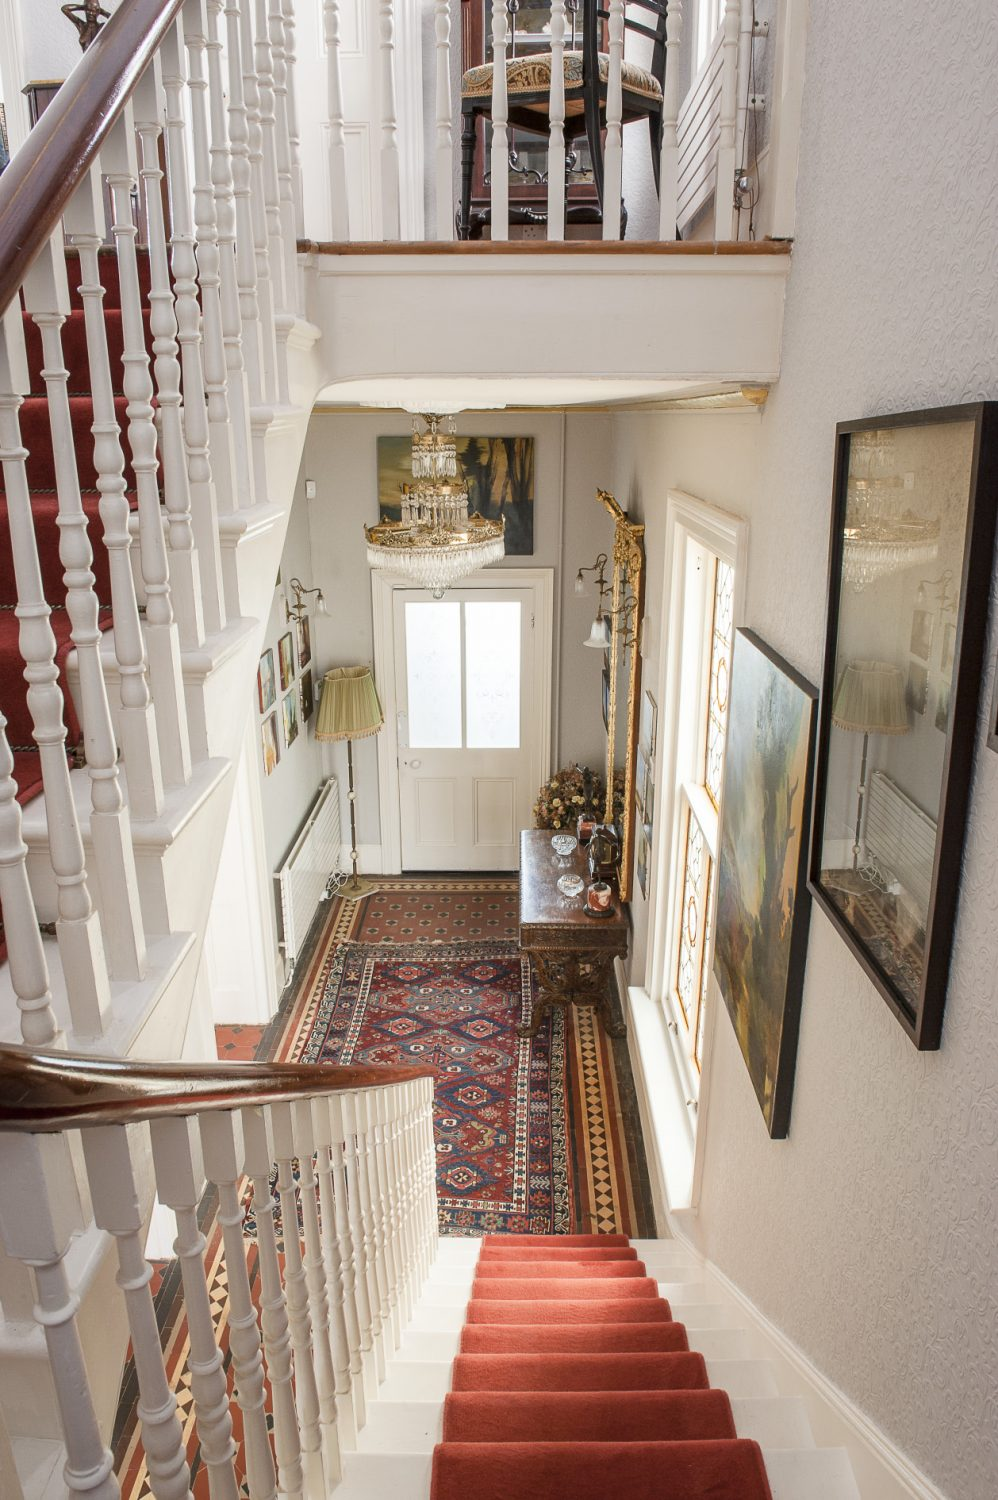 Generously proportioned artworks line the ascent to the first floor and the chandelier-lit hallway including important Rankles